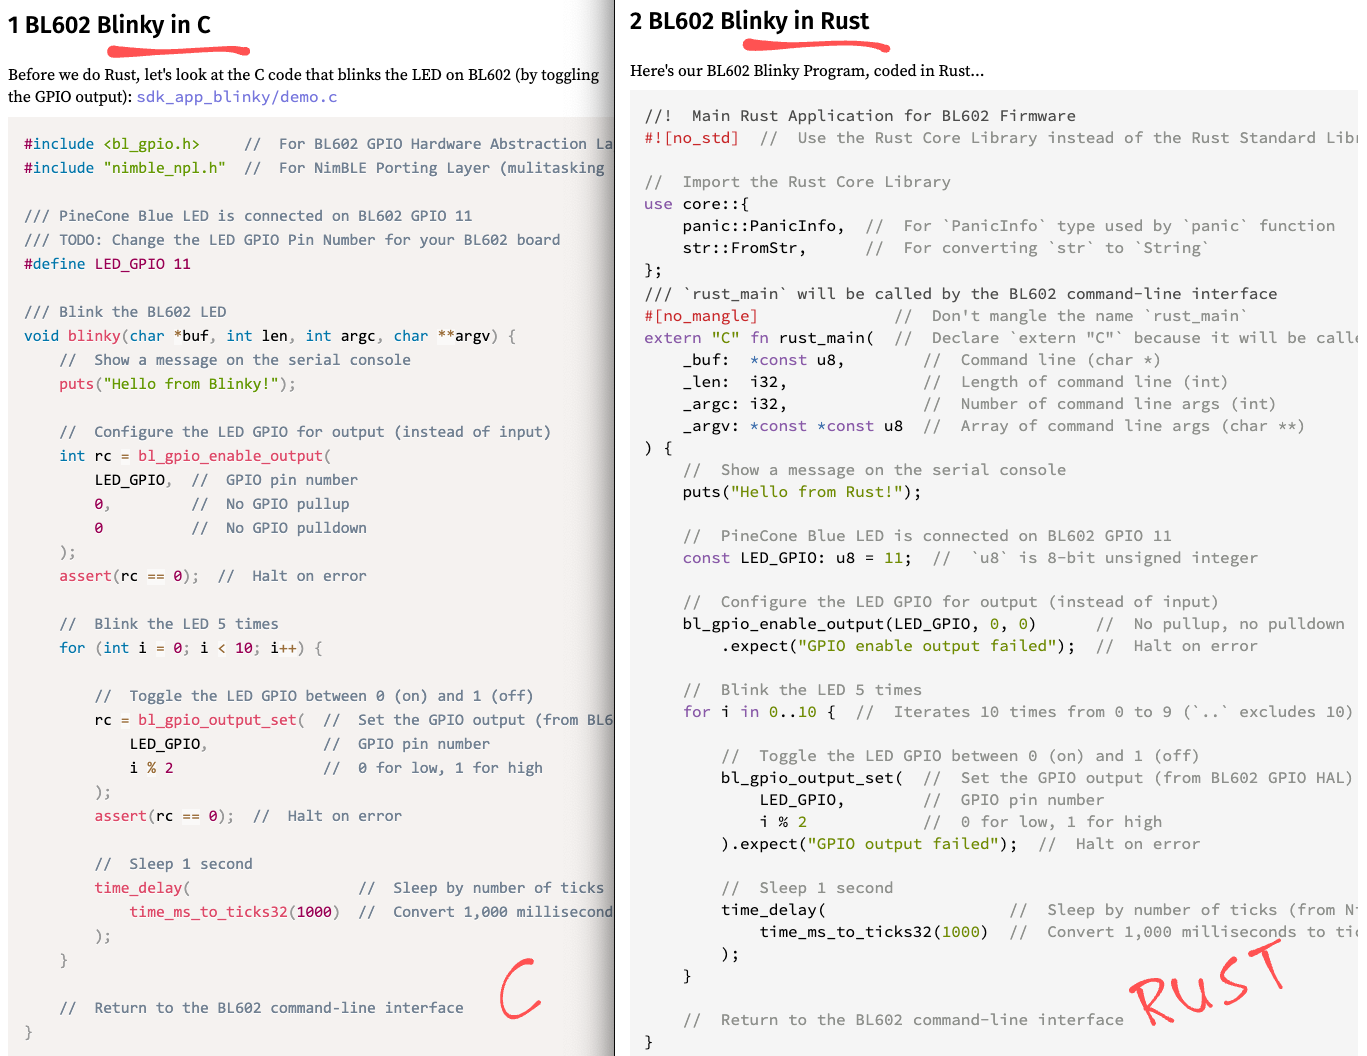 Code Switching from C to Rust